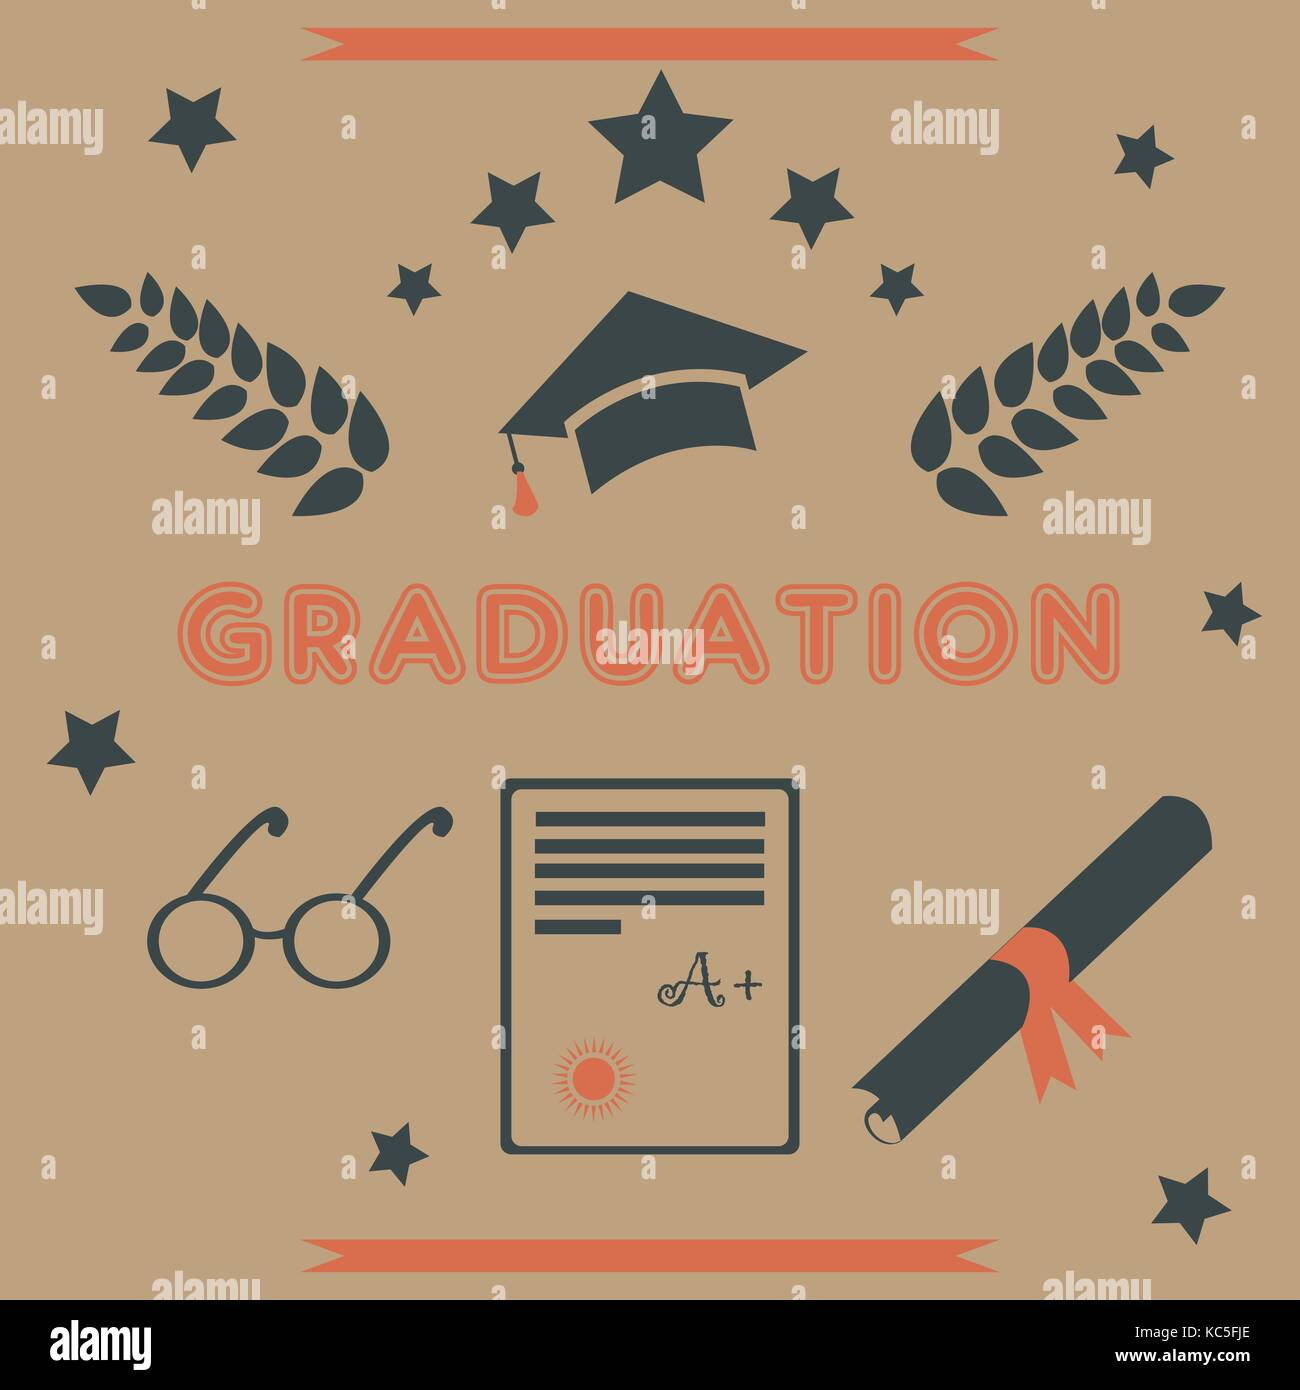 Graduation Package Retro Design Black And Orange Icons For Stock